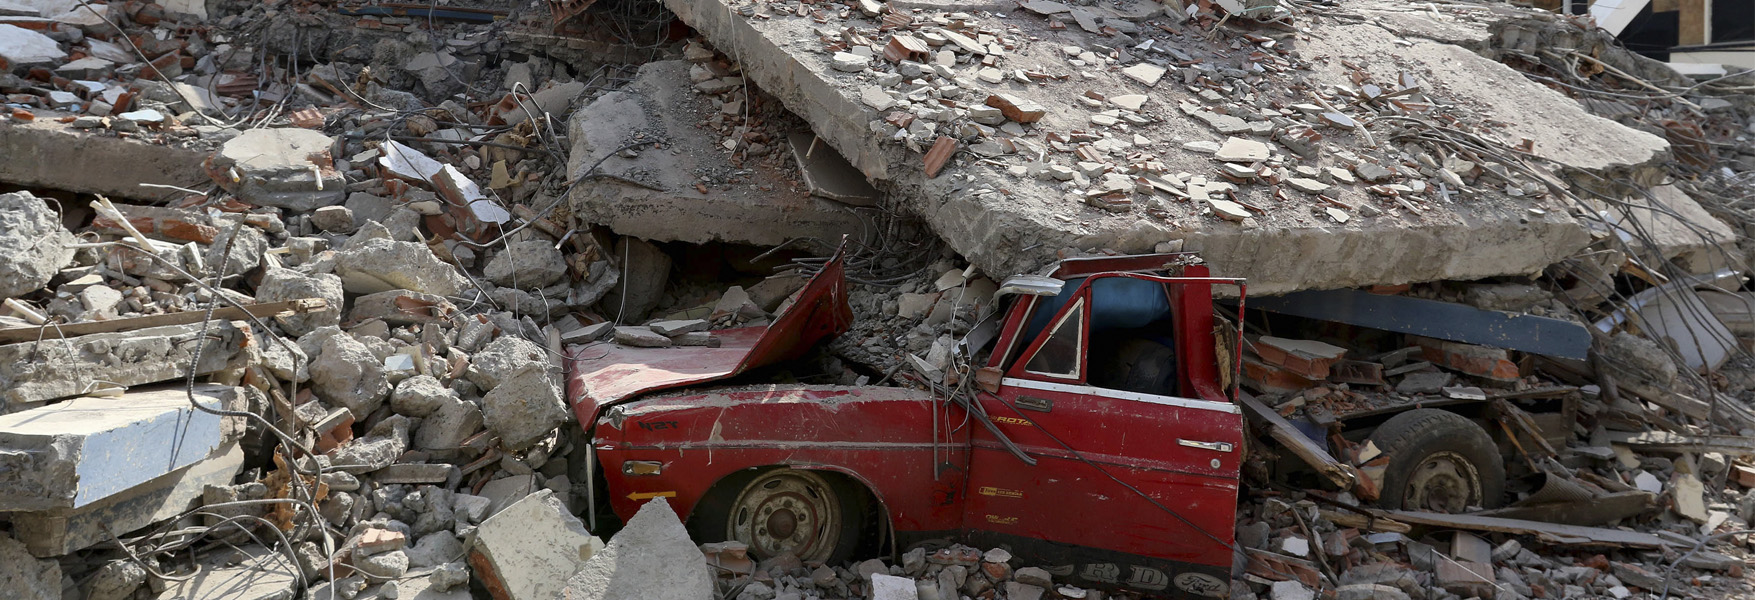 Can Earthquakes Be Predicted? - OpenMind